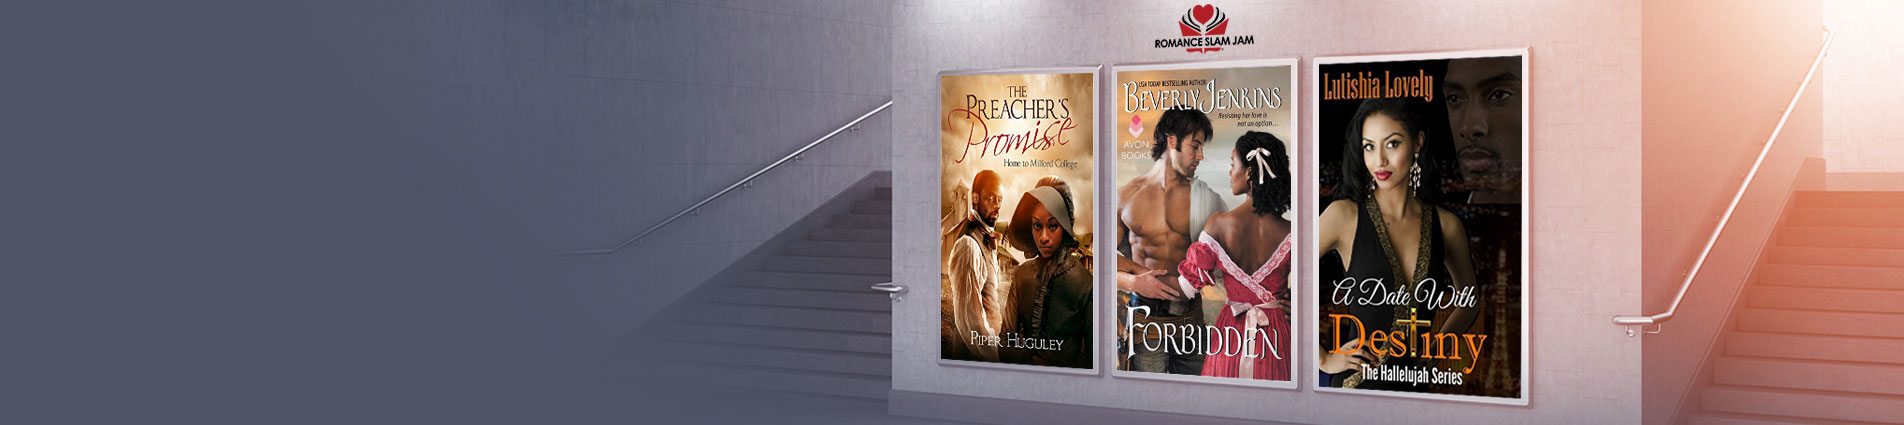 Romance Book Lover Event in Los Angeles, Readers of Black Romance books Online